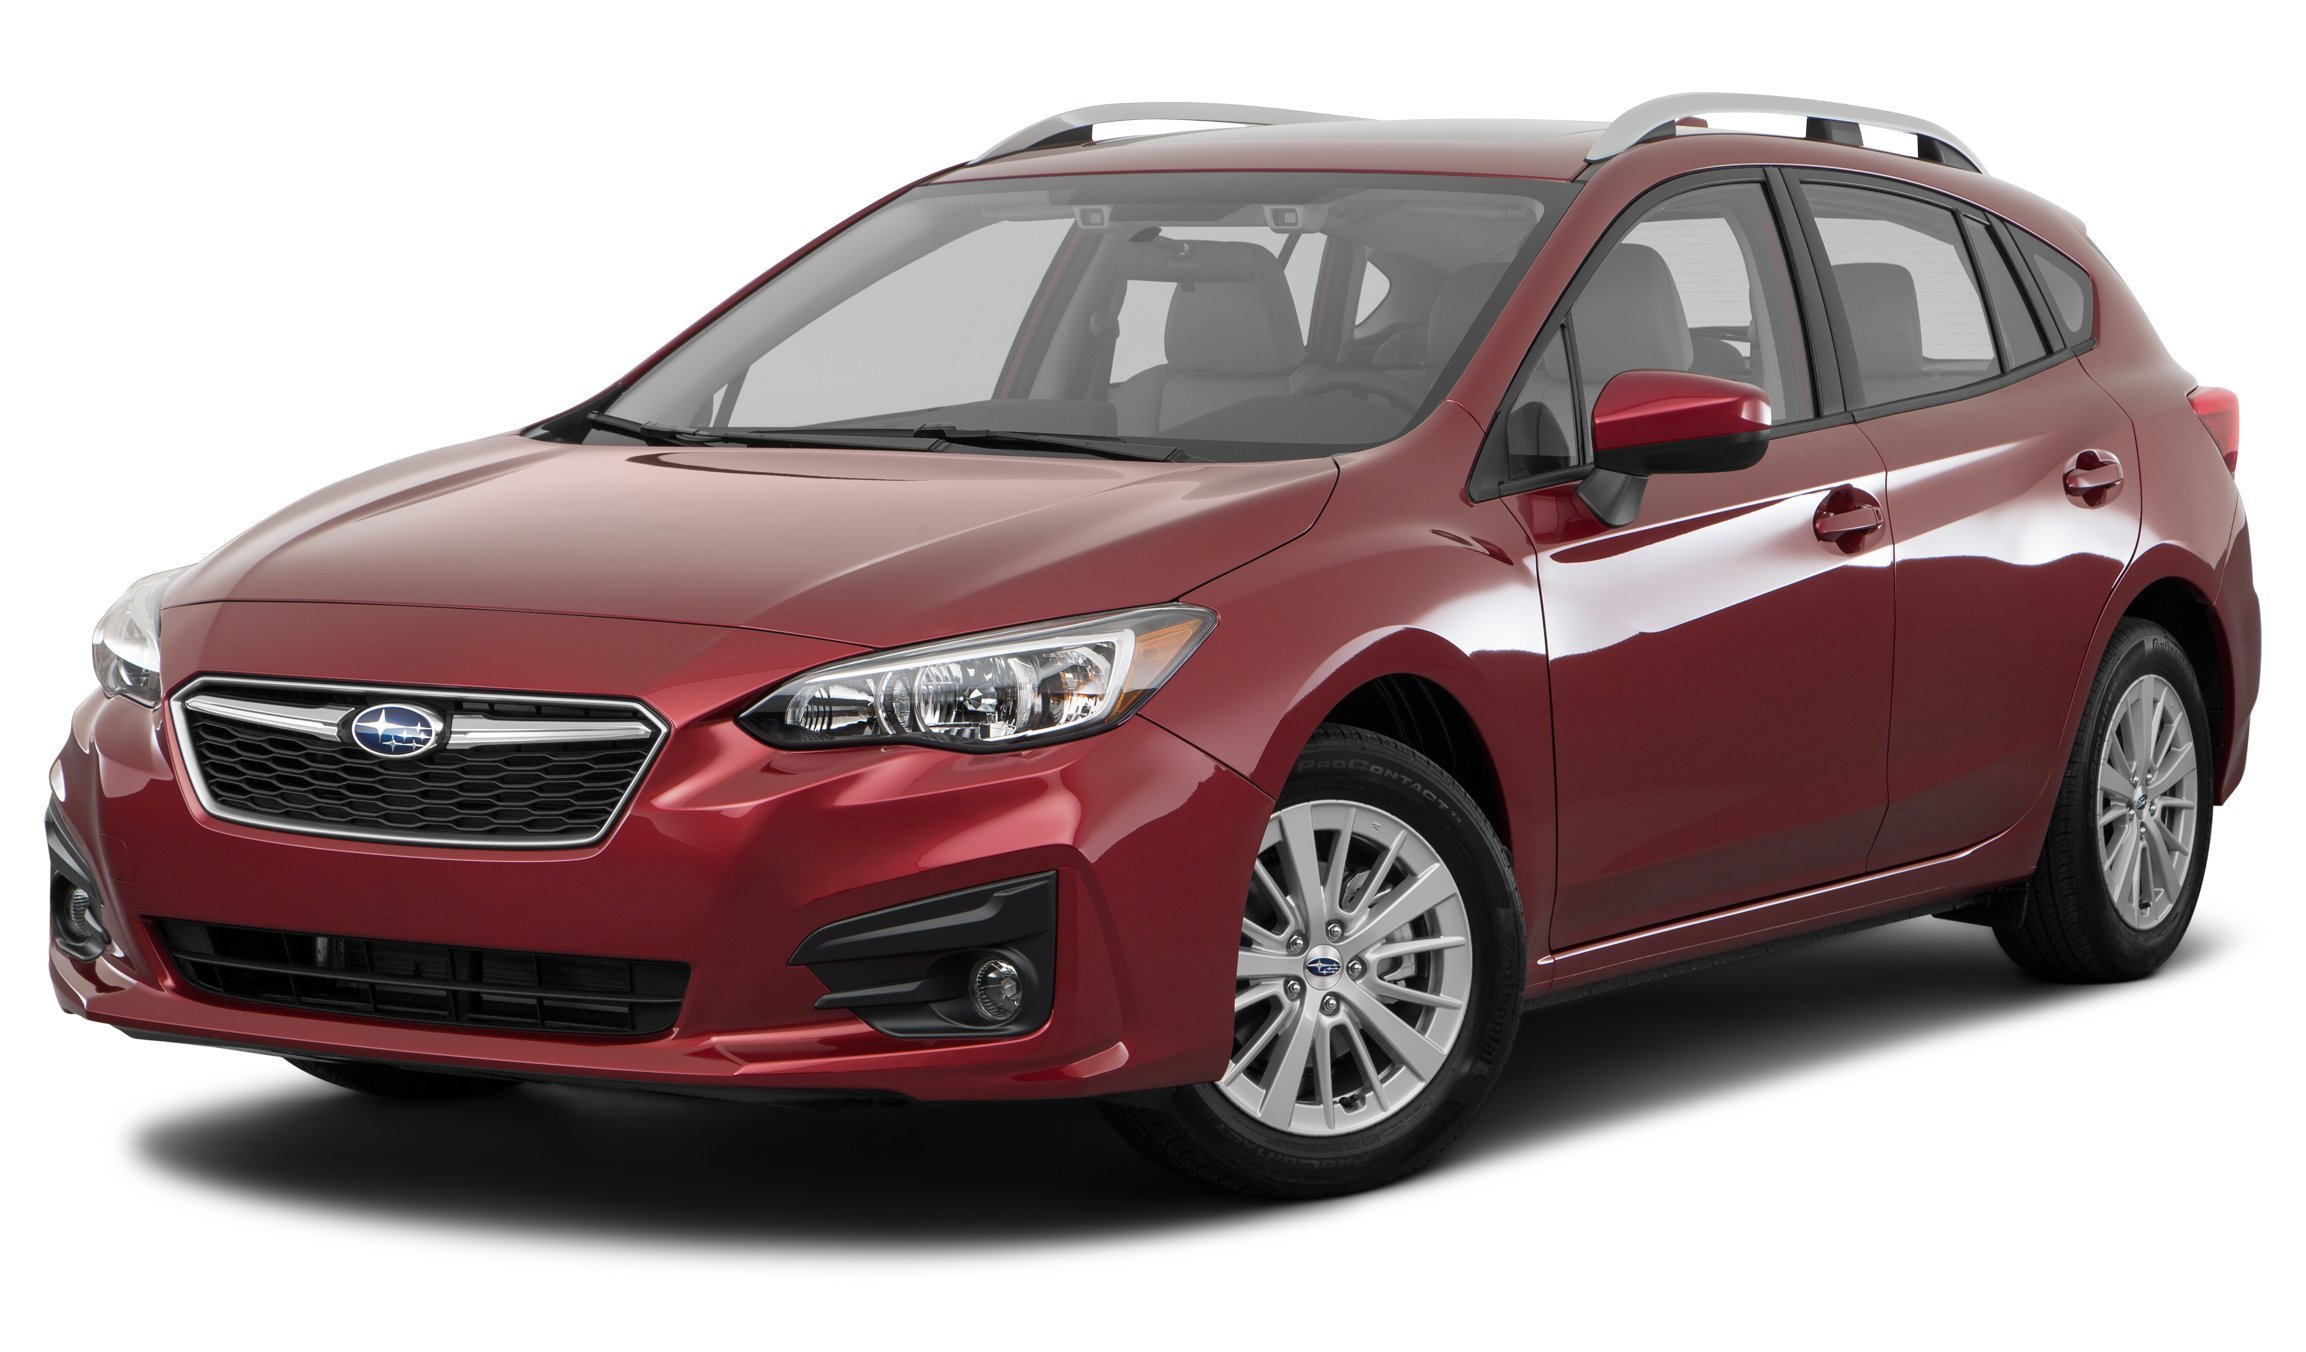 2017 subaru legacy reviews images and specs vehicles. Black Bedroom Furniture Sets. Home Design Ideas